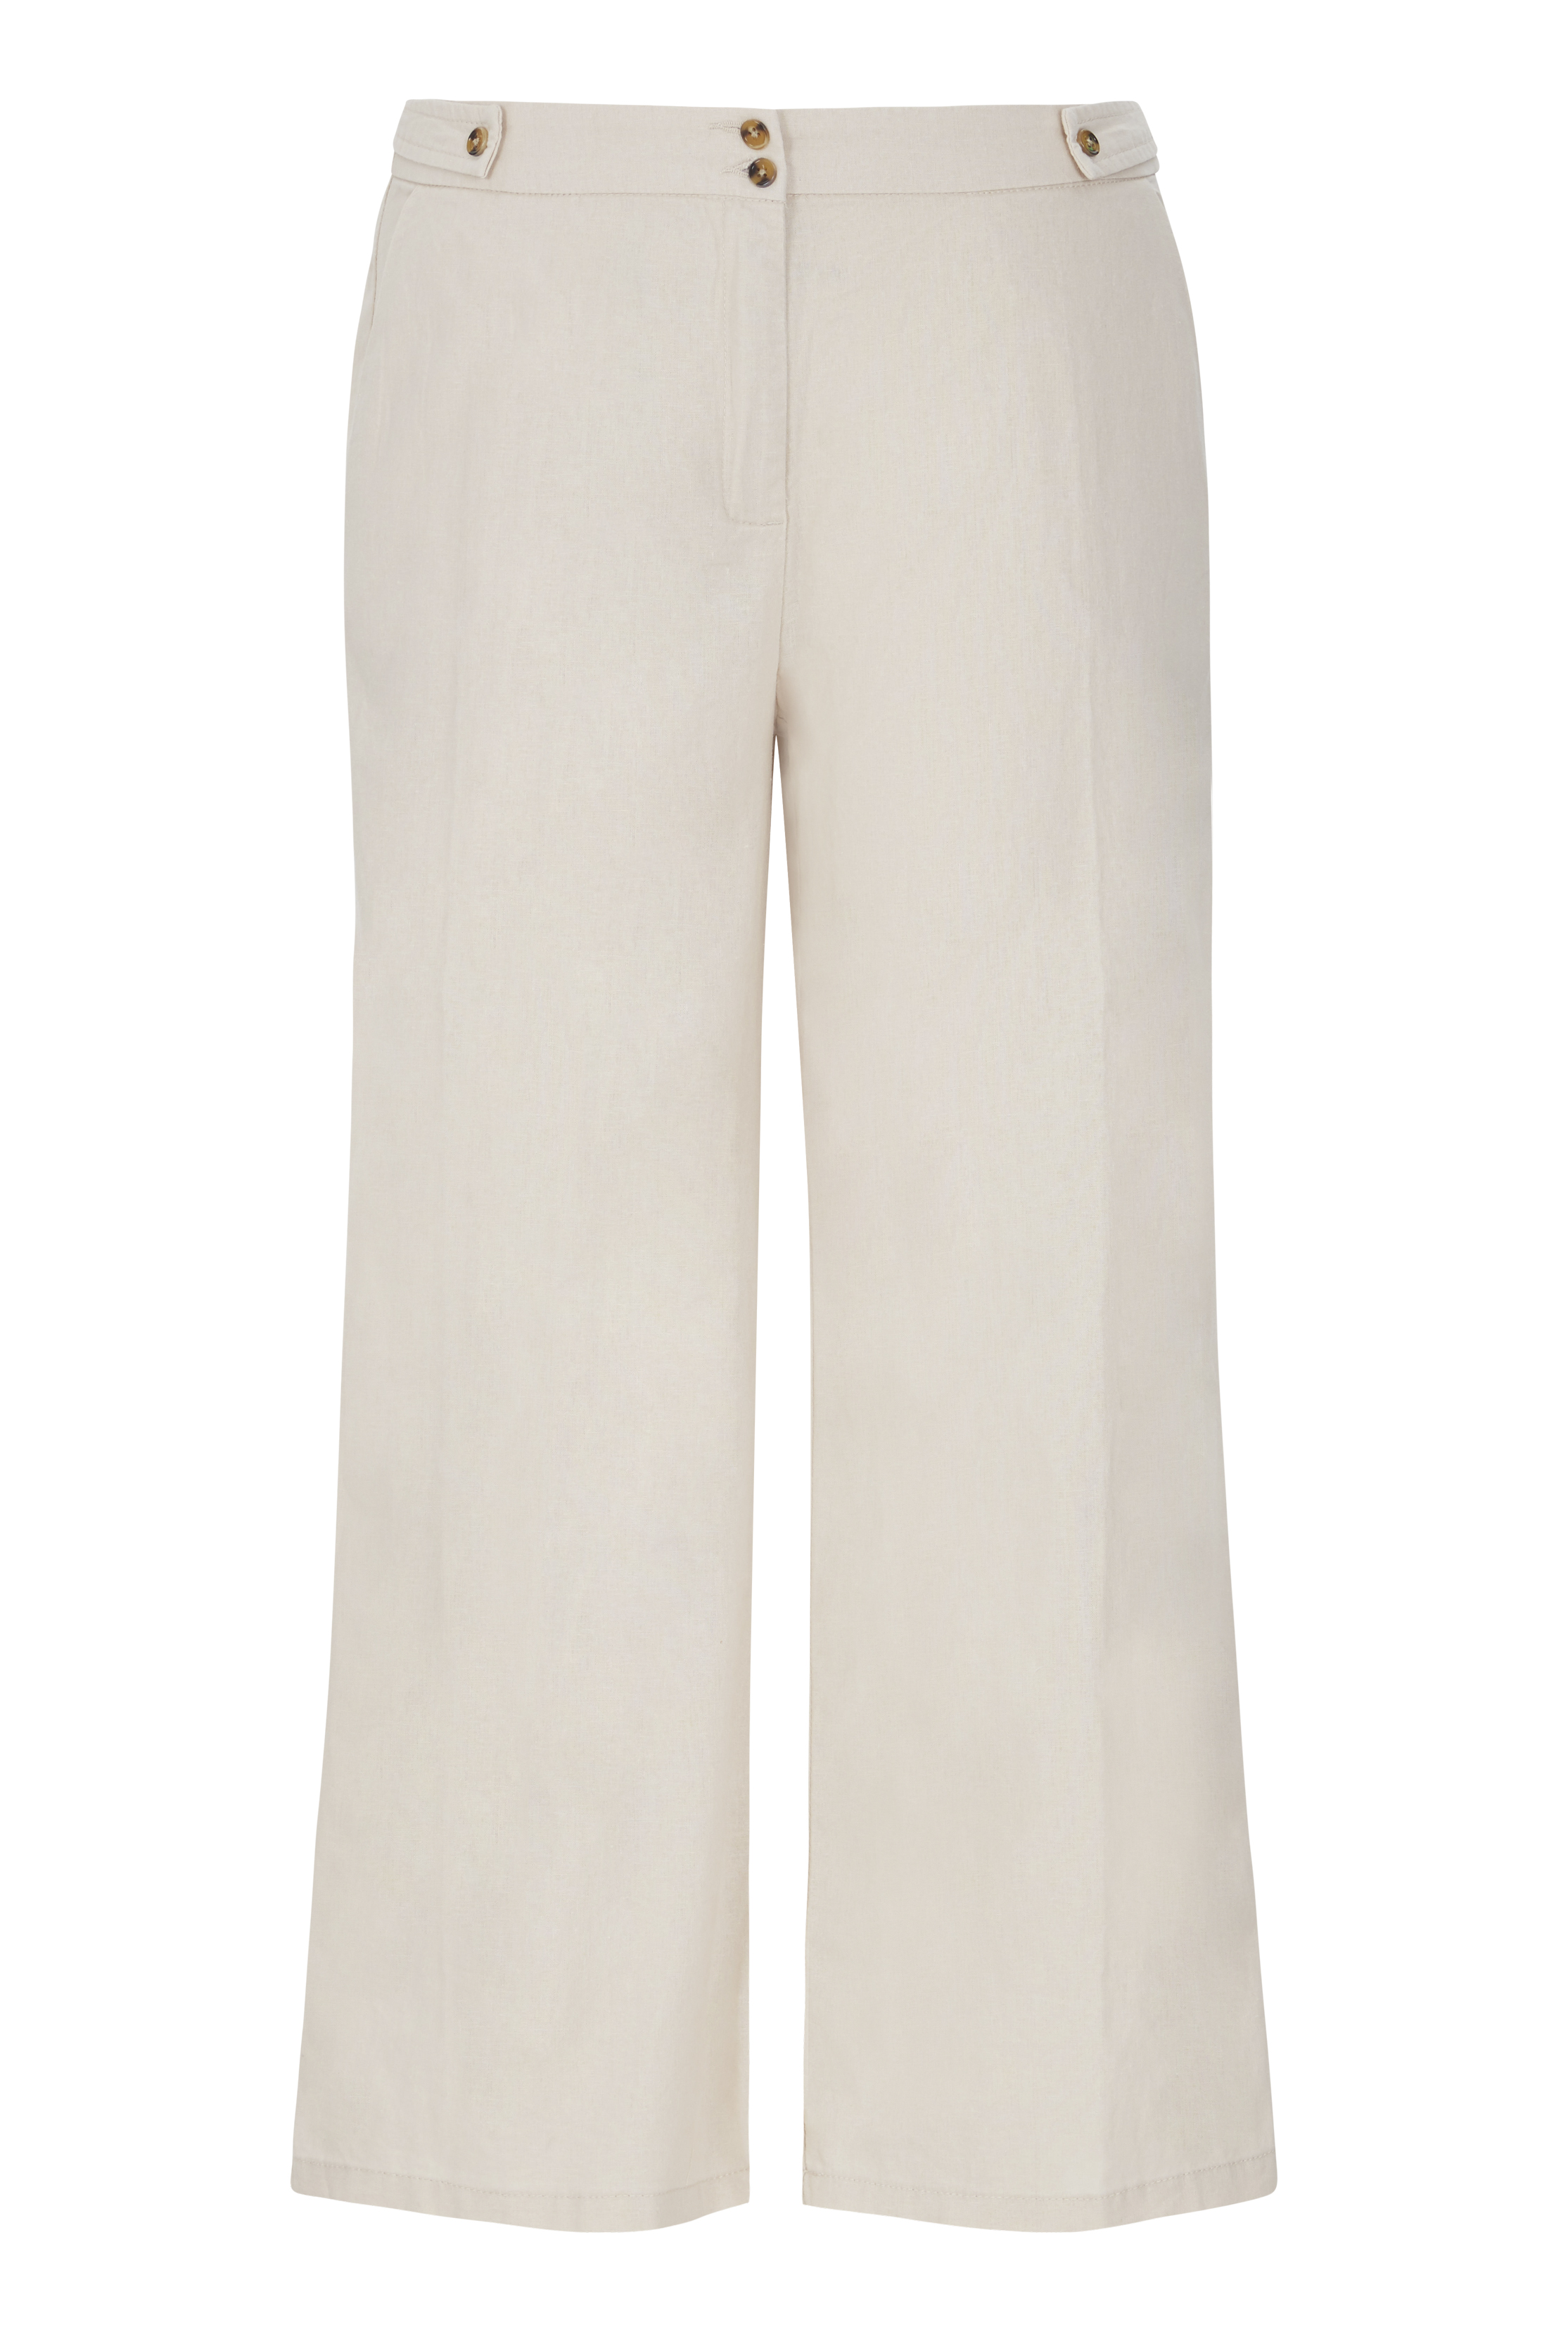 Ivory Natural Blend Wide Leg Culotte